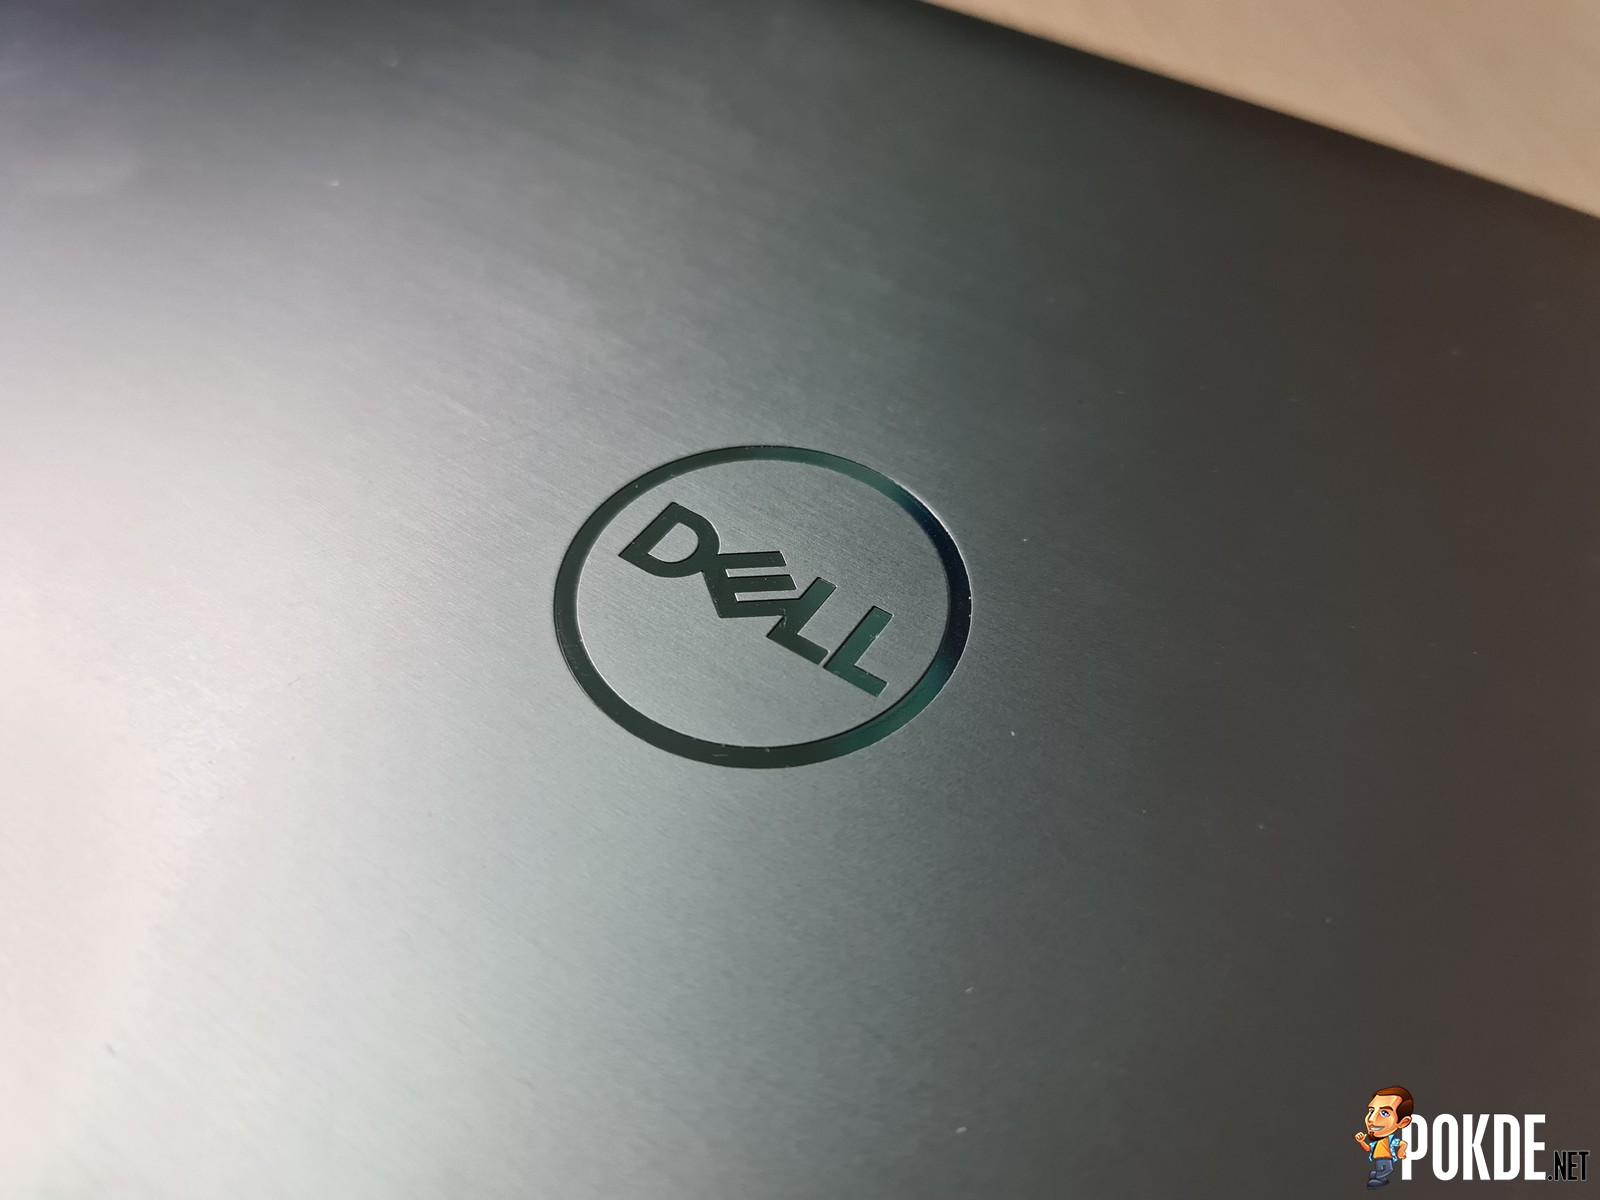 Dell Latitude 9510 2-in-1 Review - When Laptops Truly Mean Business 36